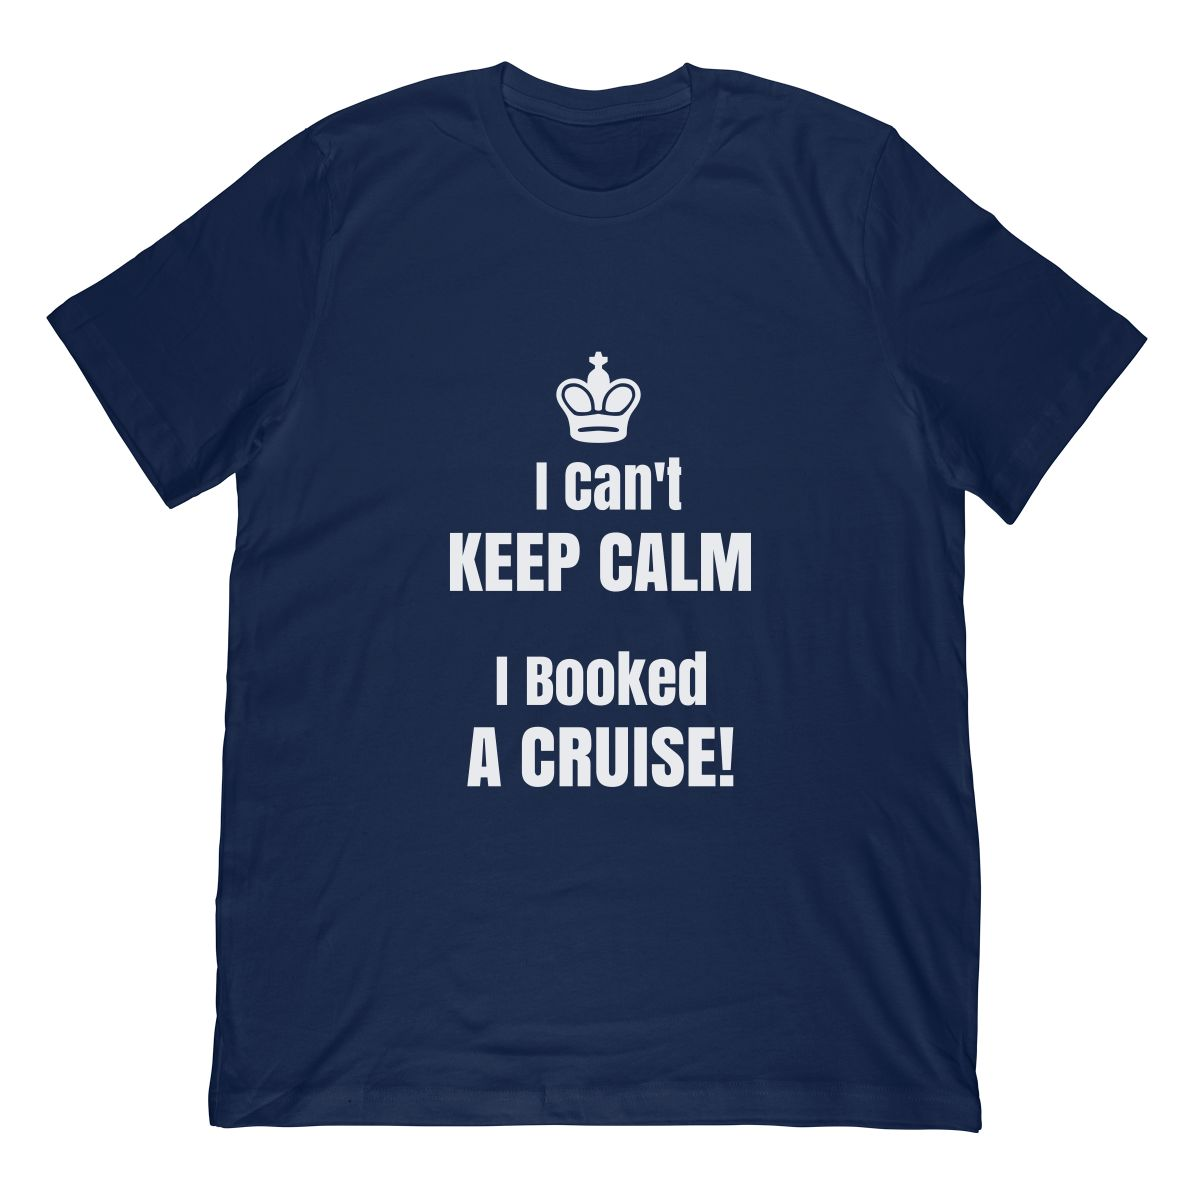 Funny Cant Keep Calm I Booked A Cruise T Shirt With Crown